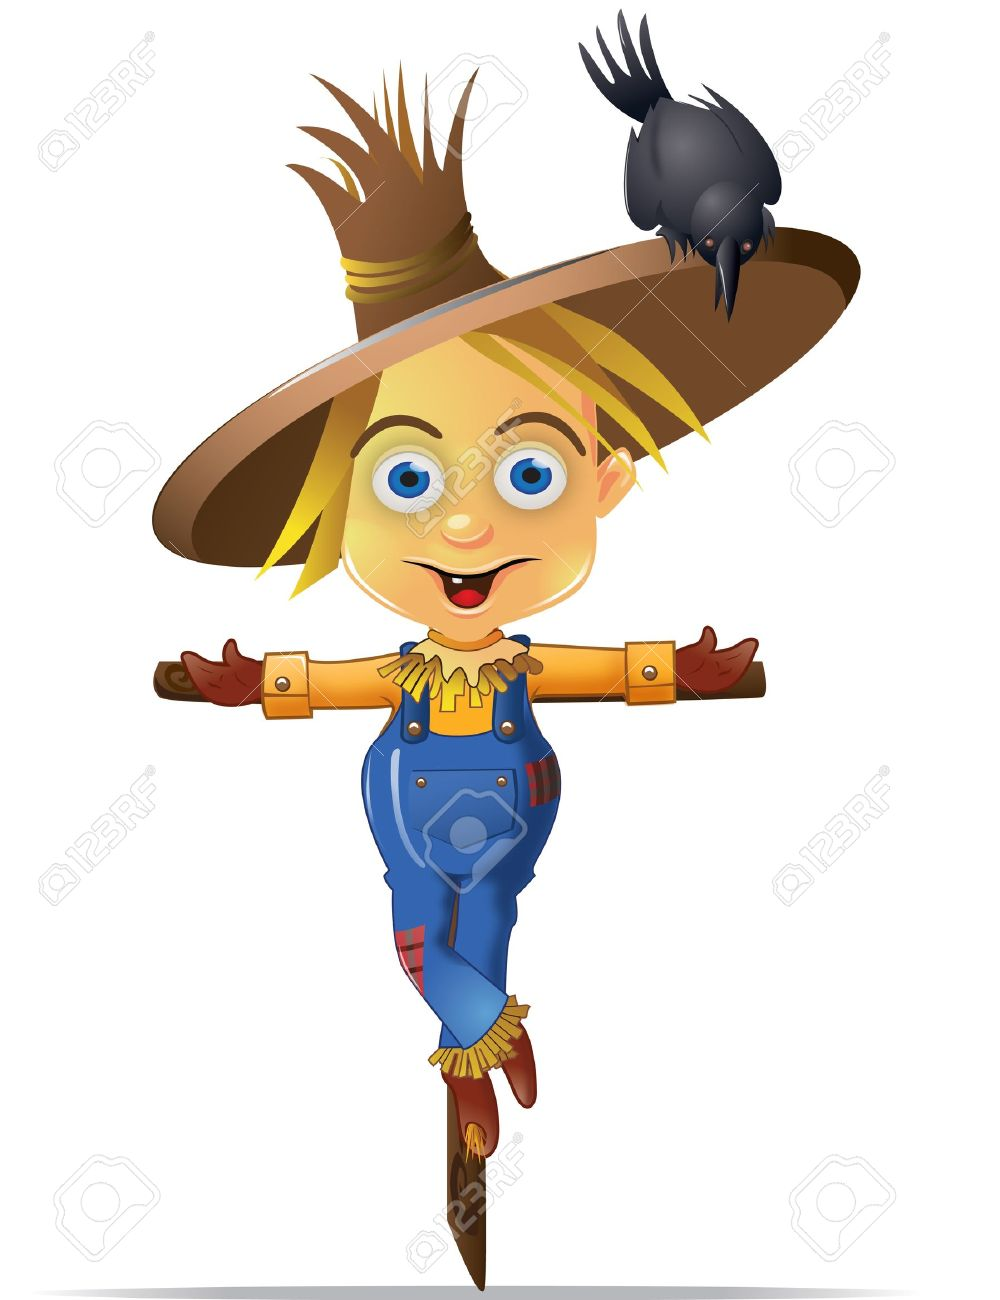 A Cute Scarecrow With A Black Crow Character Graphic Stock Photo.